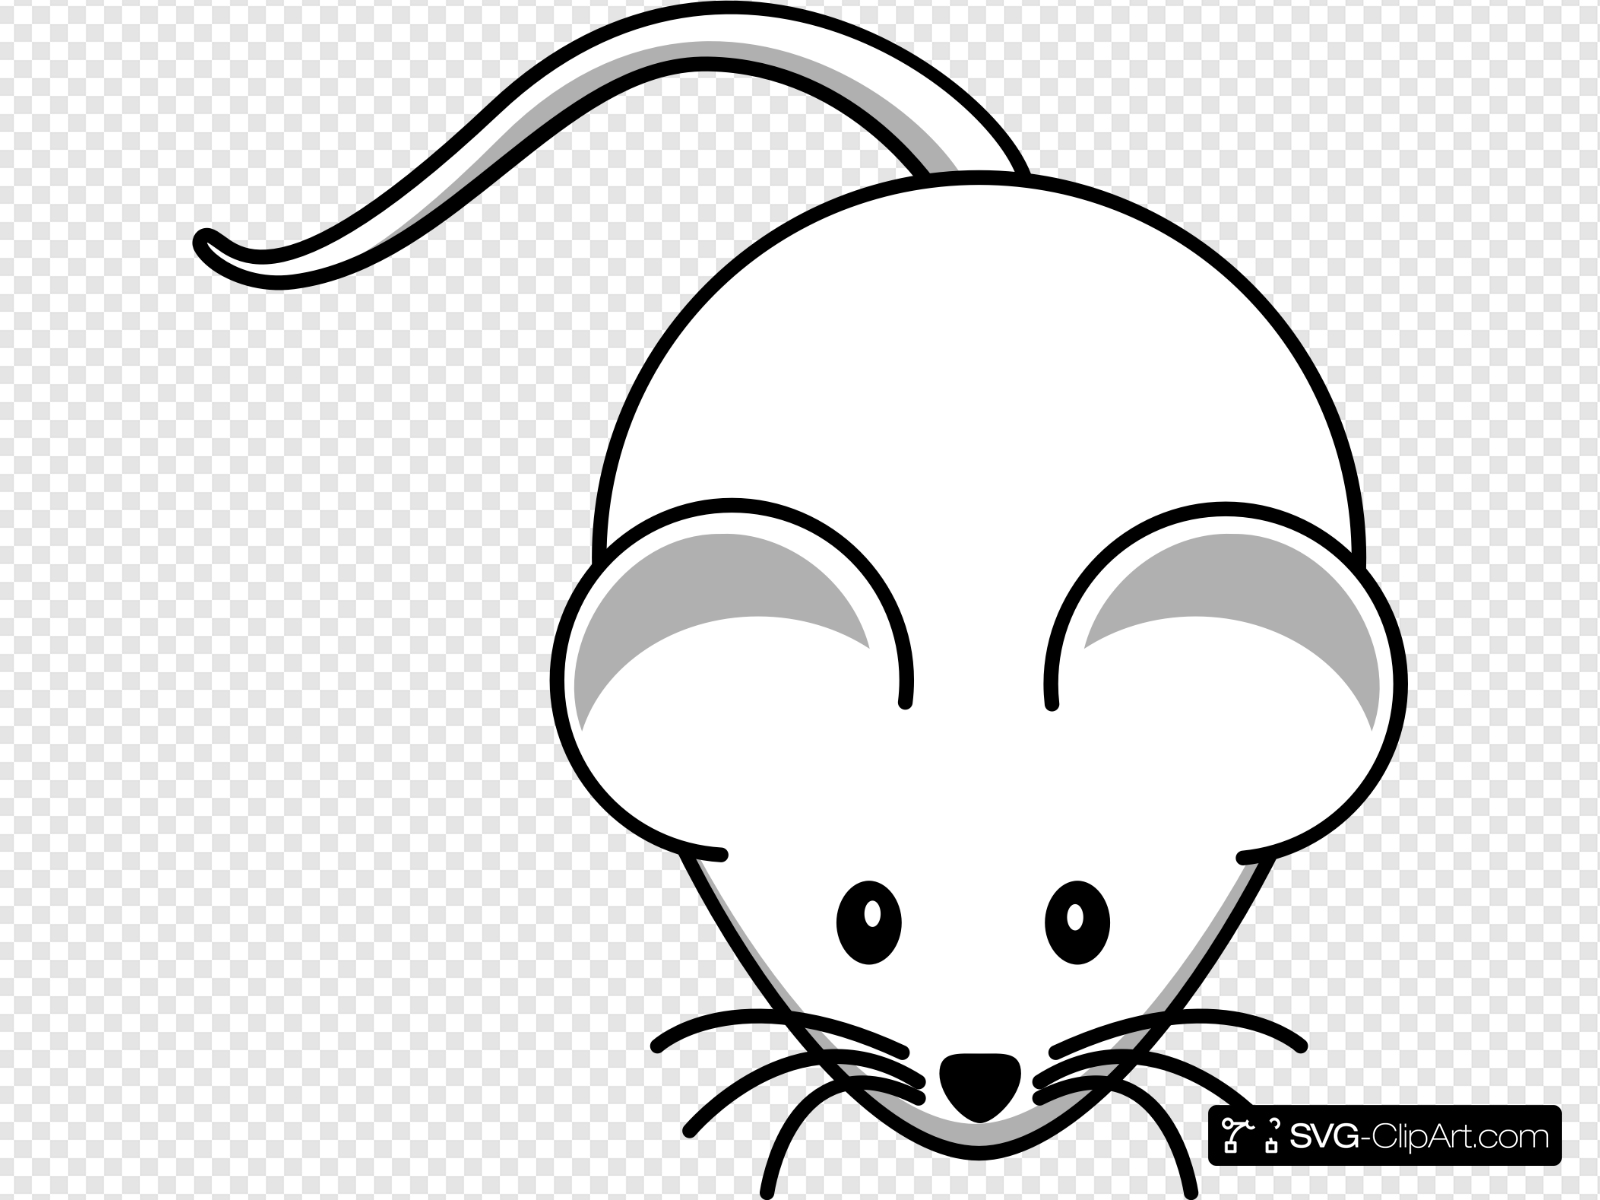 White Mouse Clip art, Icon and SVG.